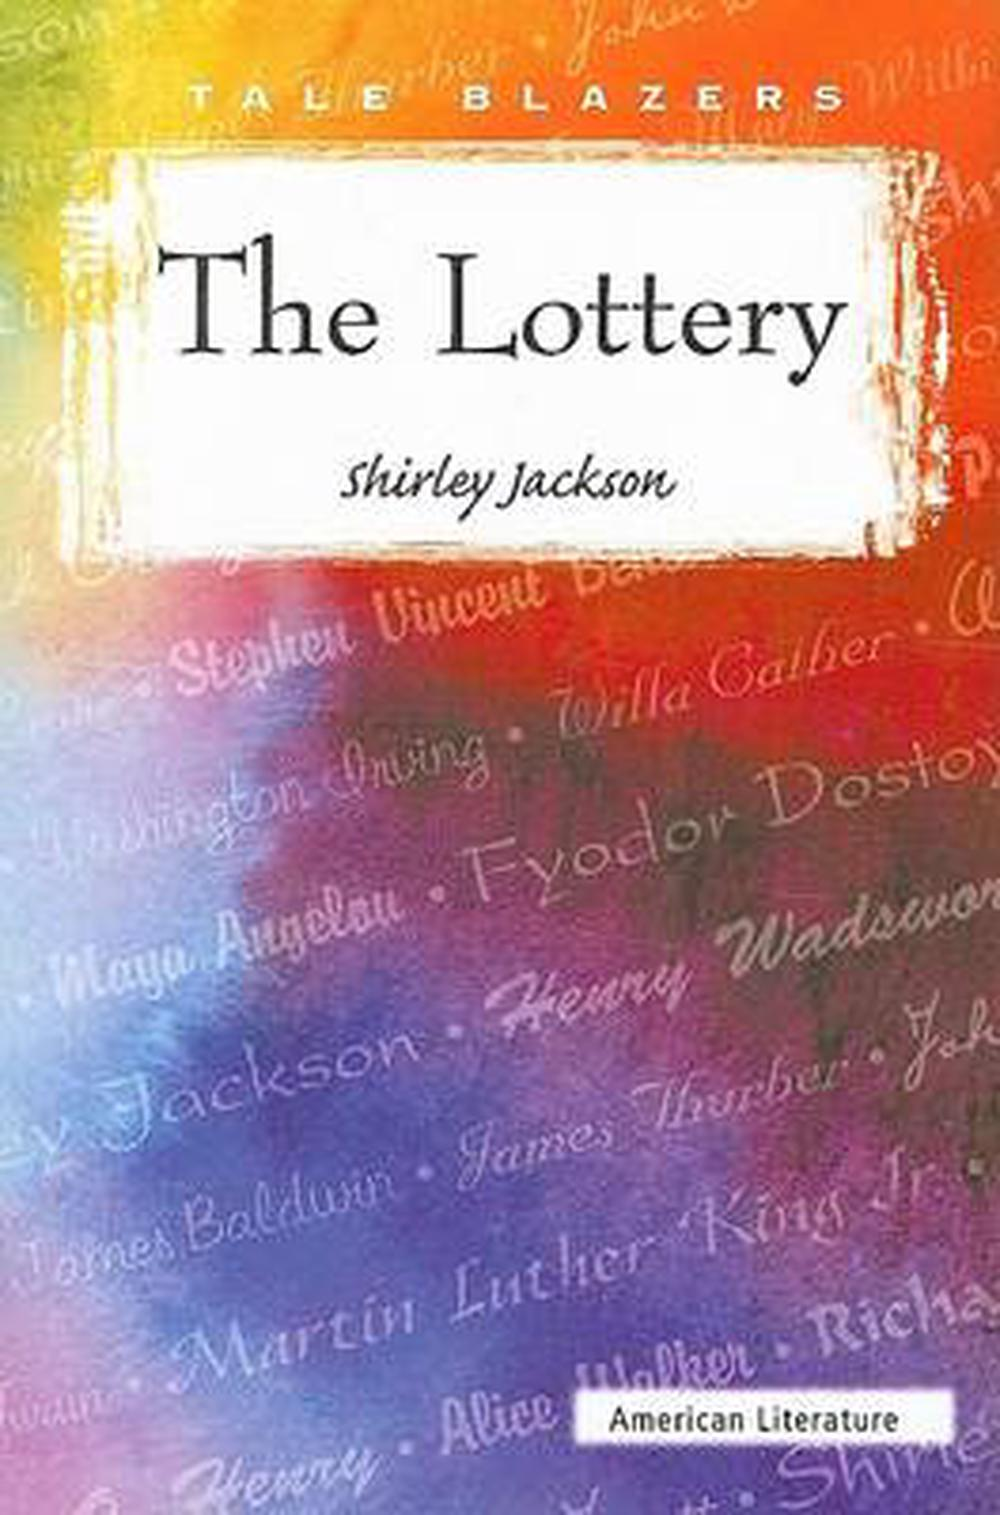 The Lottery by Shirley Jackson, Paperback, 9781563127878